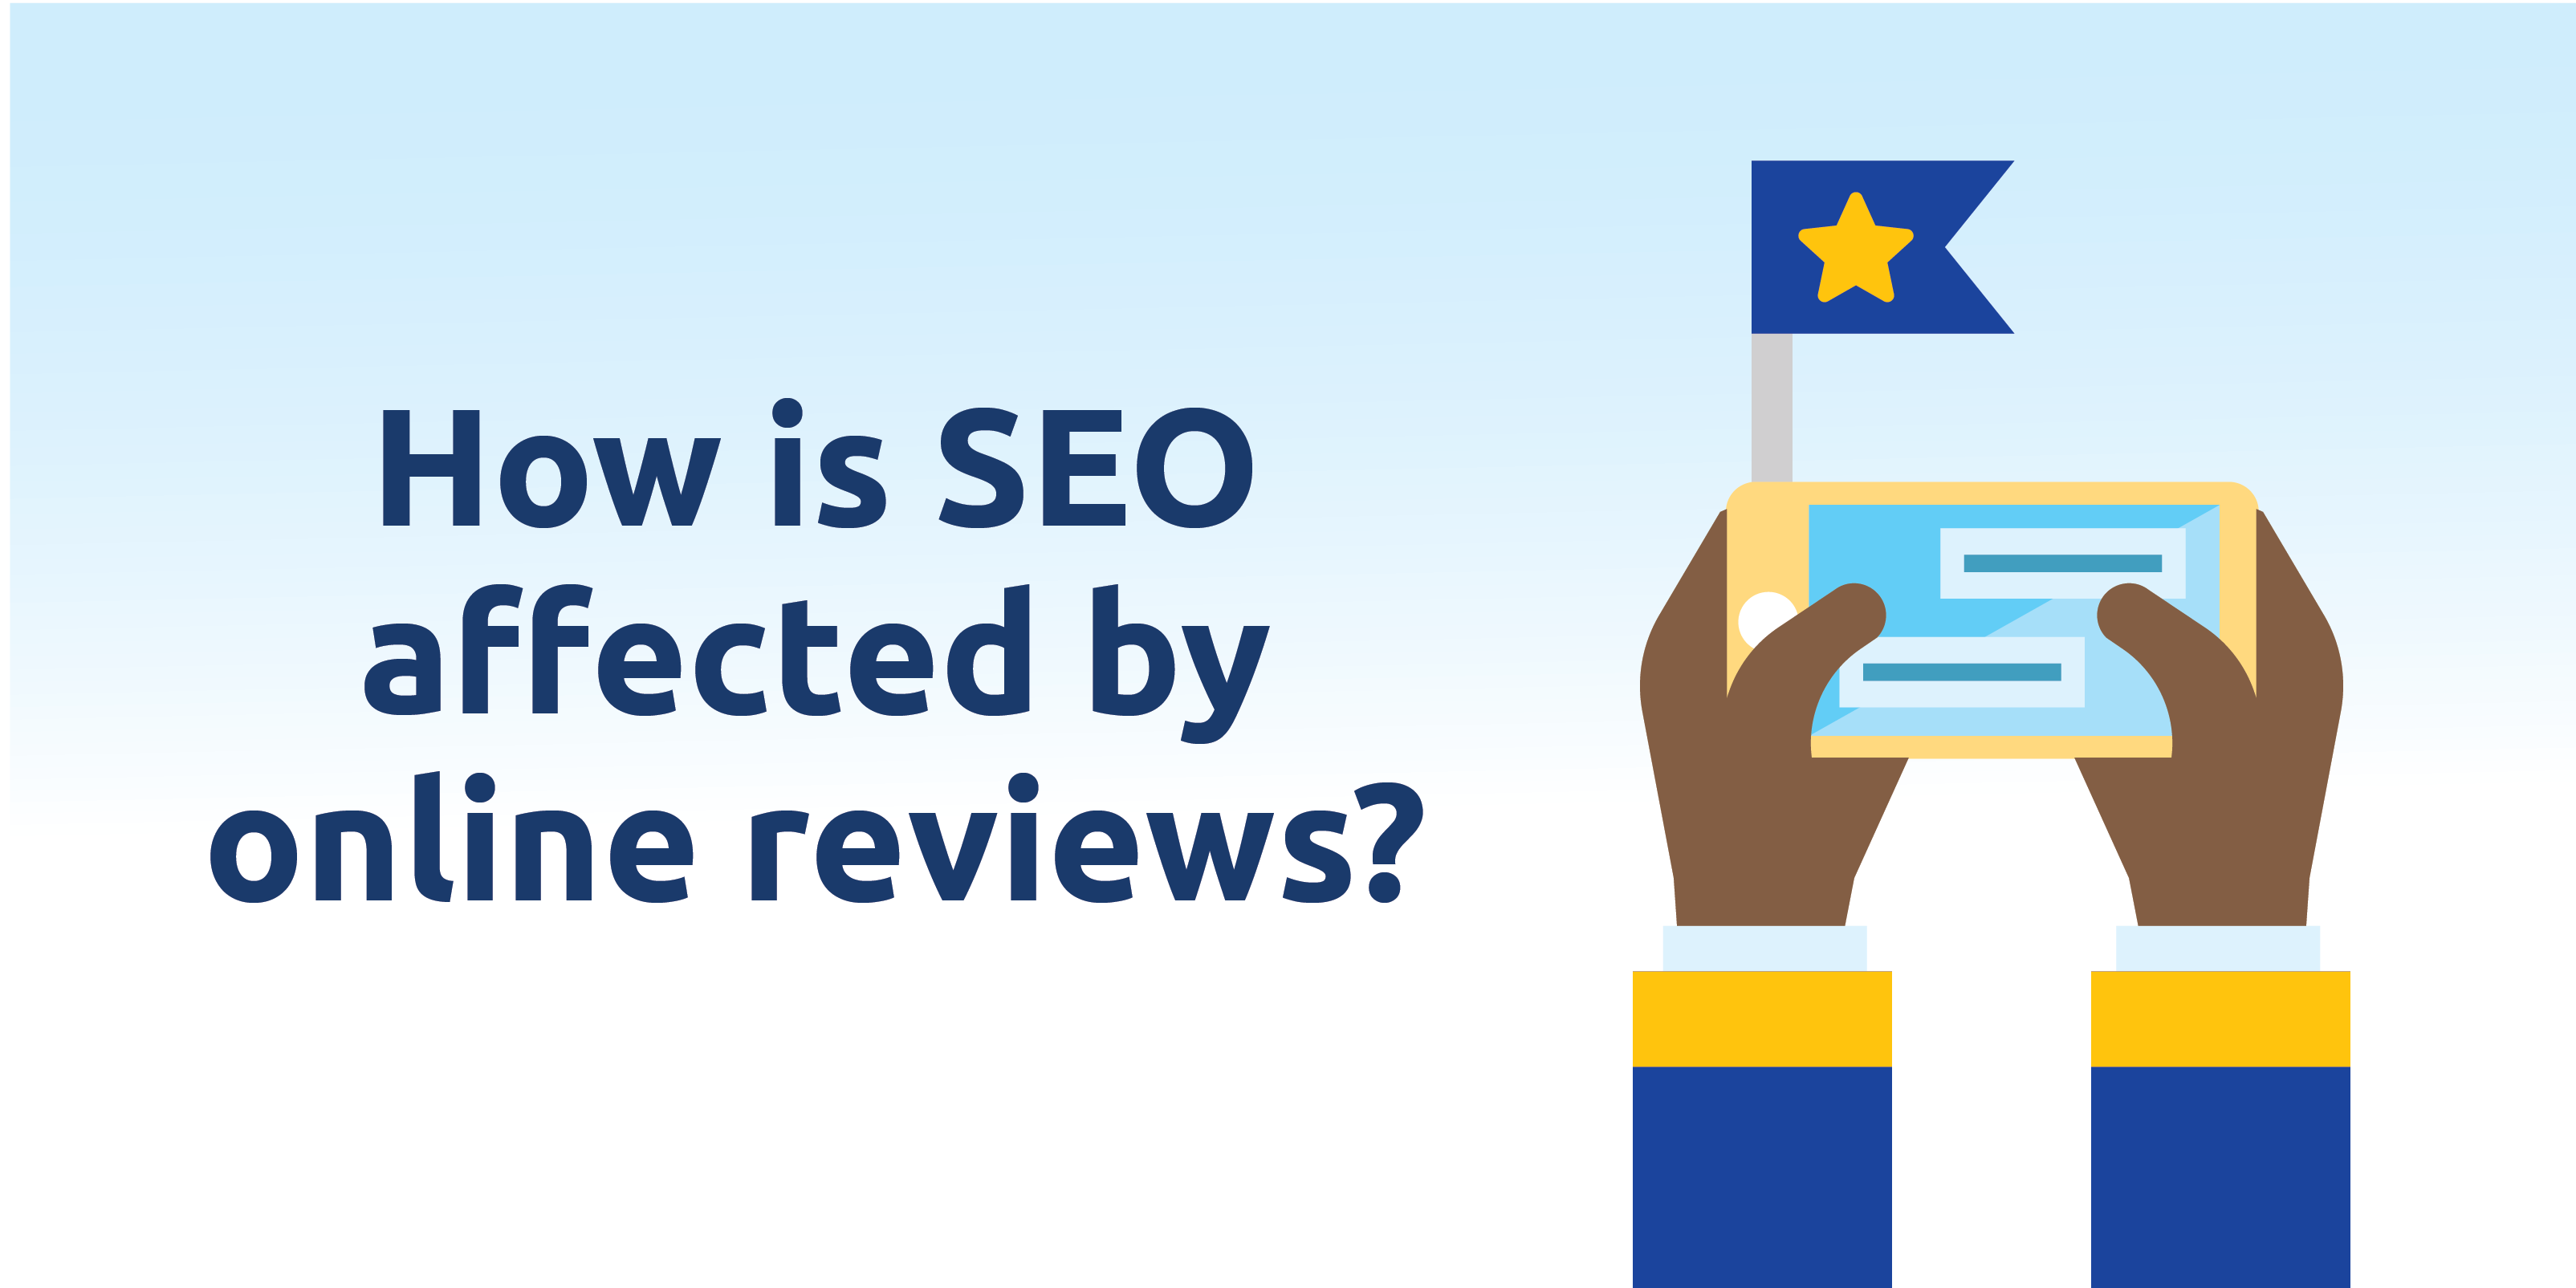 How is SEO affected by online reviews?